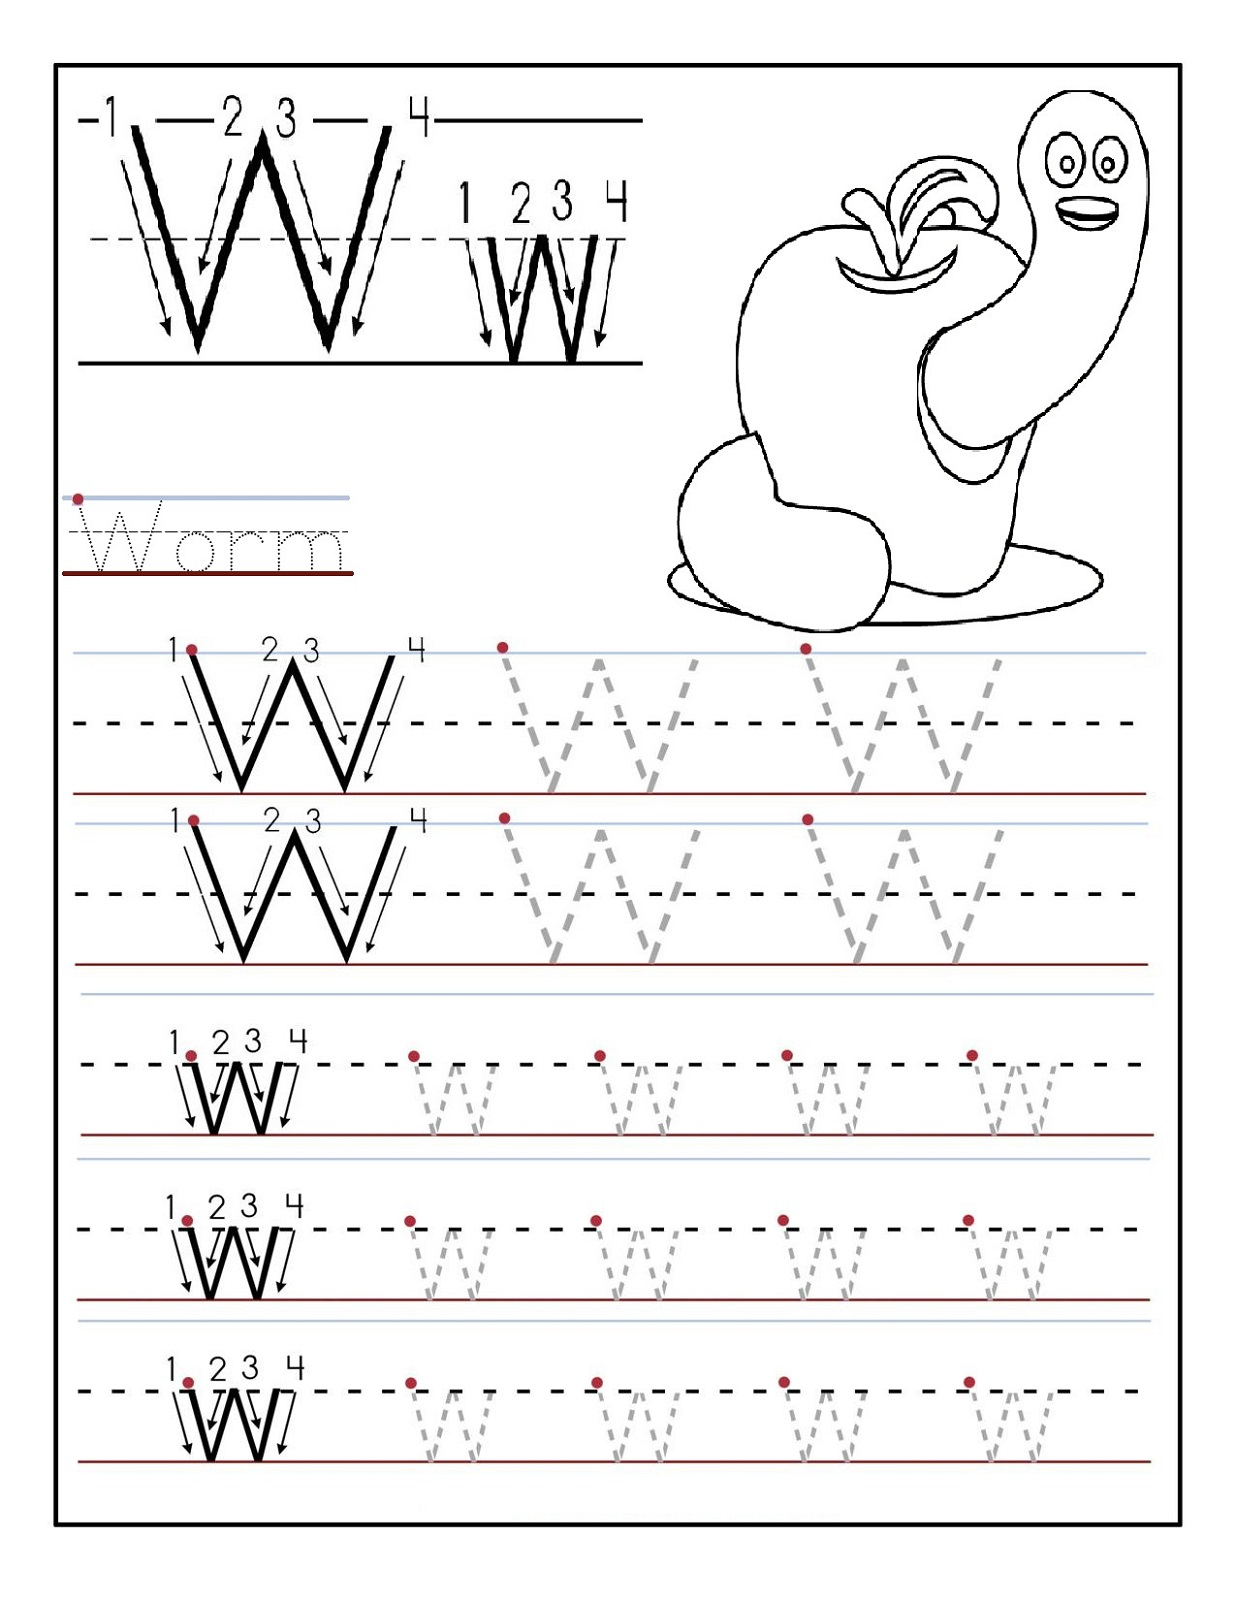 worksheets on alphabets for preschoolers preschool alphabet worksheets activity shelter 310